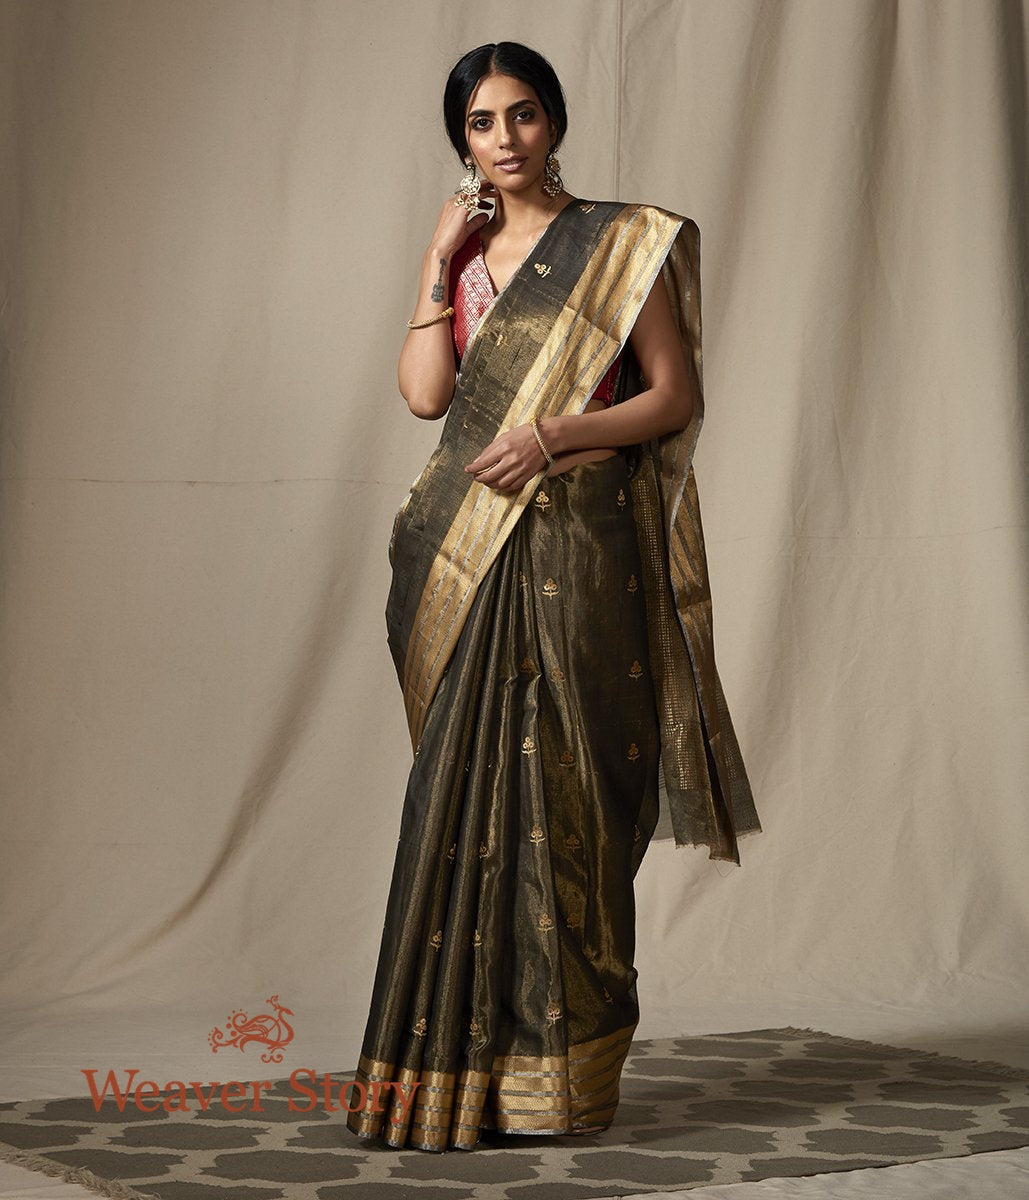 Handwoven Black and Gold Chanderi Silk Tissue Saree with Gold Zari Floral Motifs